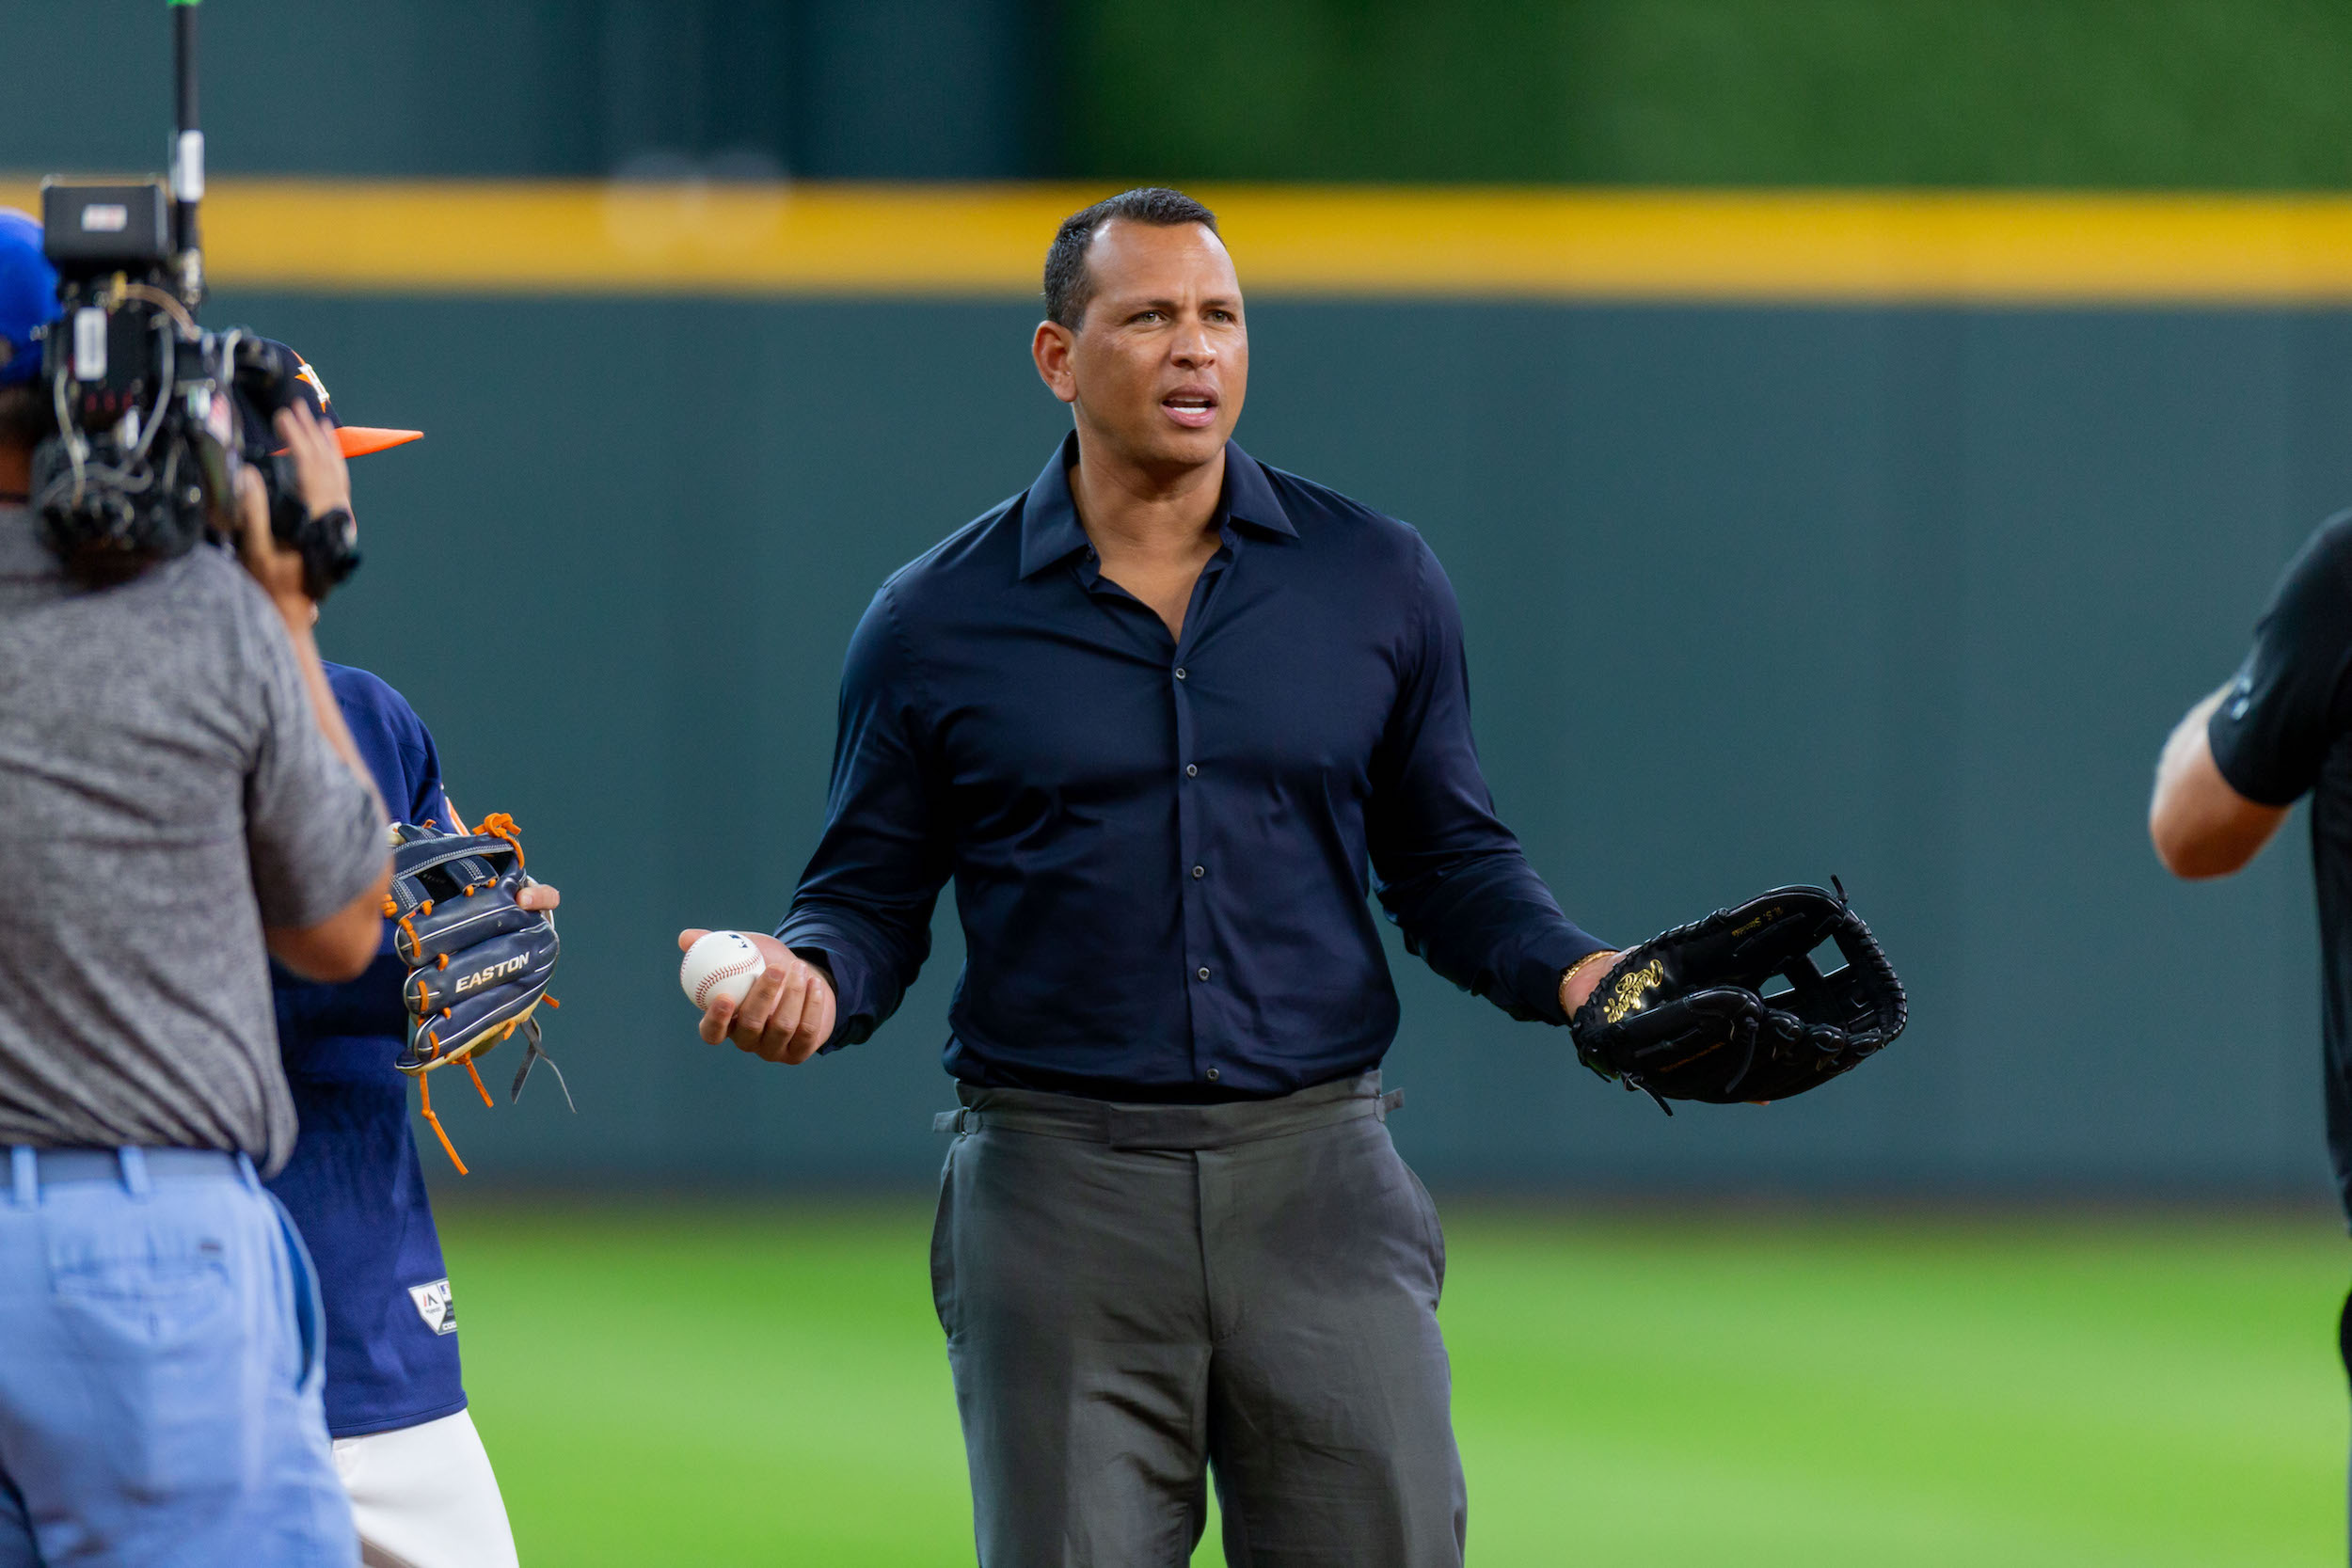 Due to his interest in buying the New York Mets, Alex Rodriguez won't be calling their game on ESPN Sunday Night Baseball.